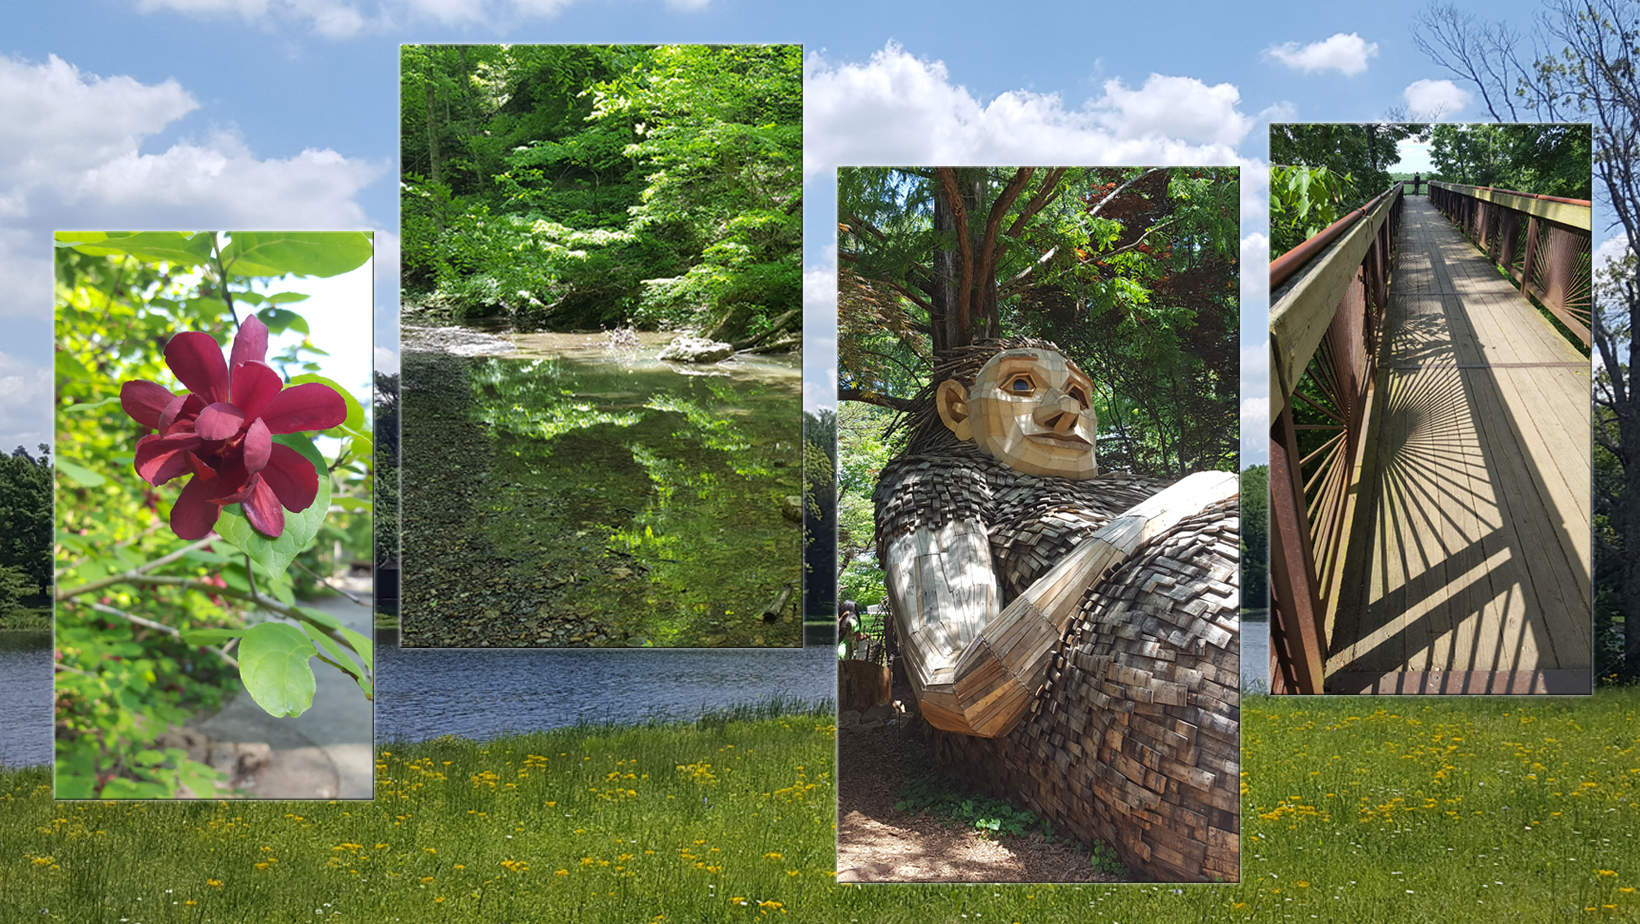 Images from Bernheim Arboretum and Research Forest